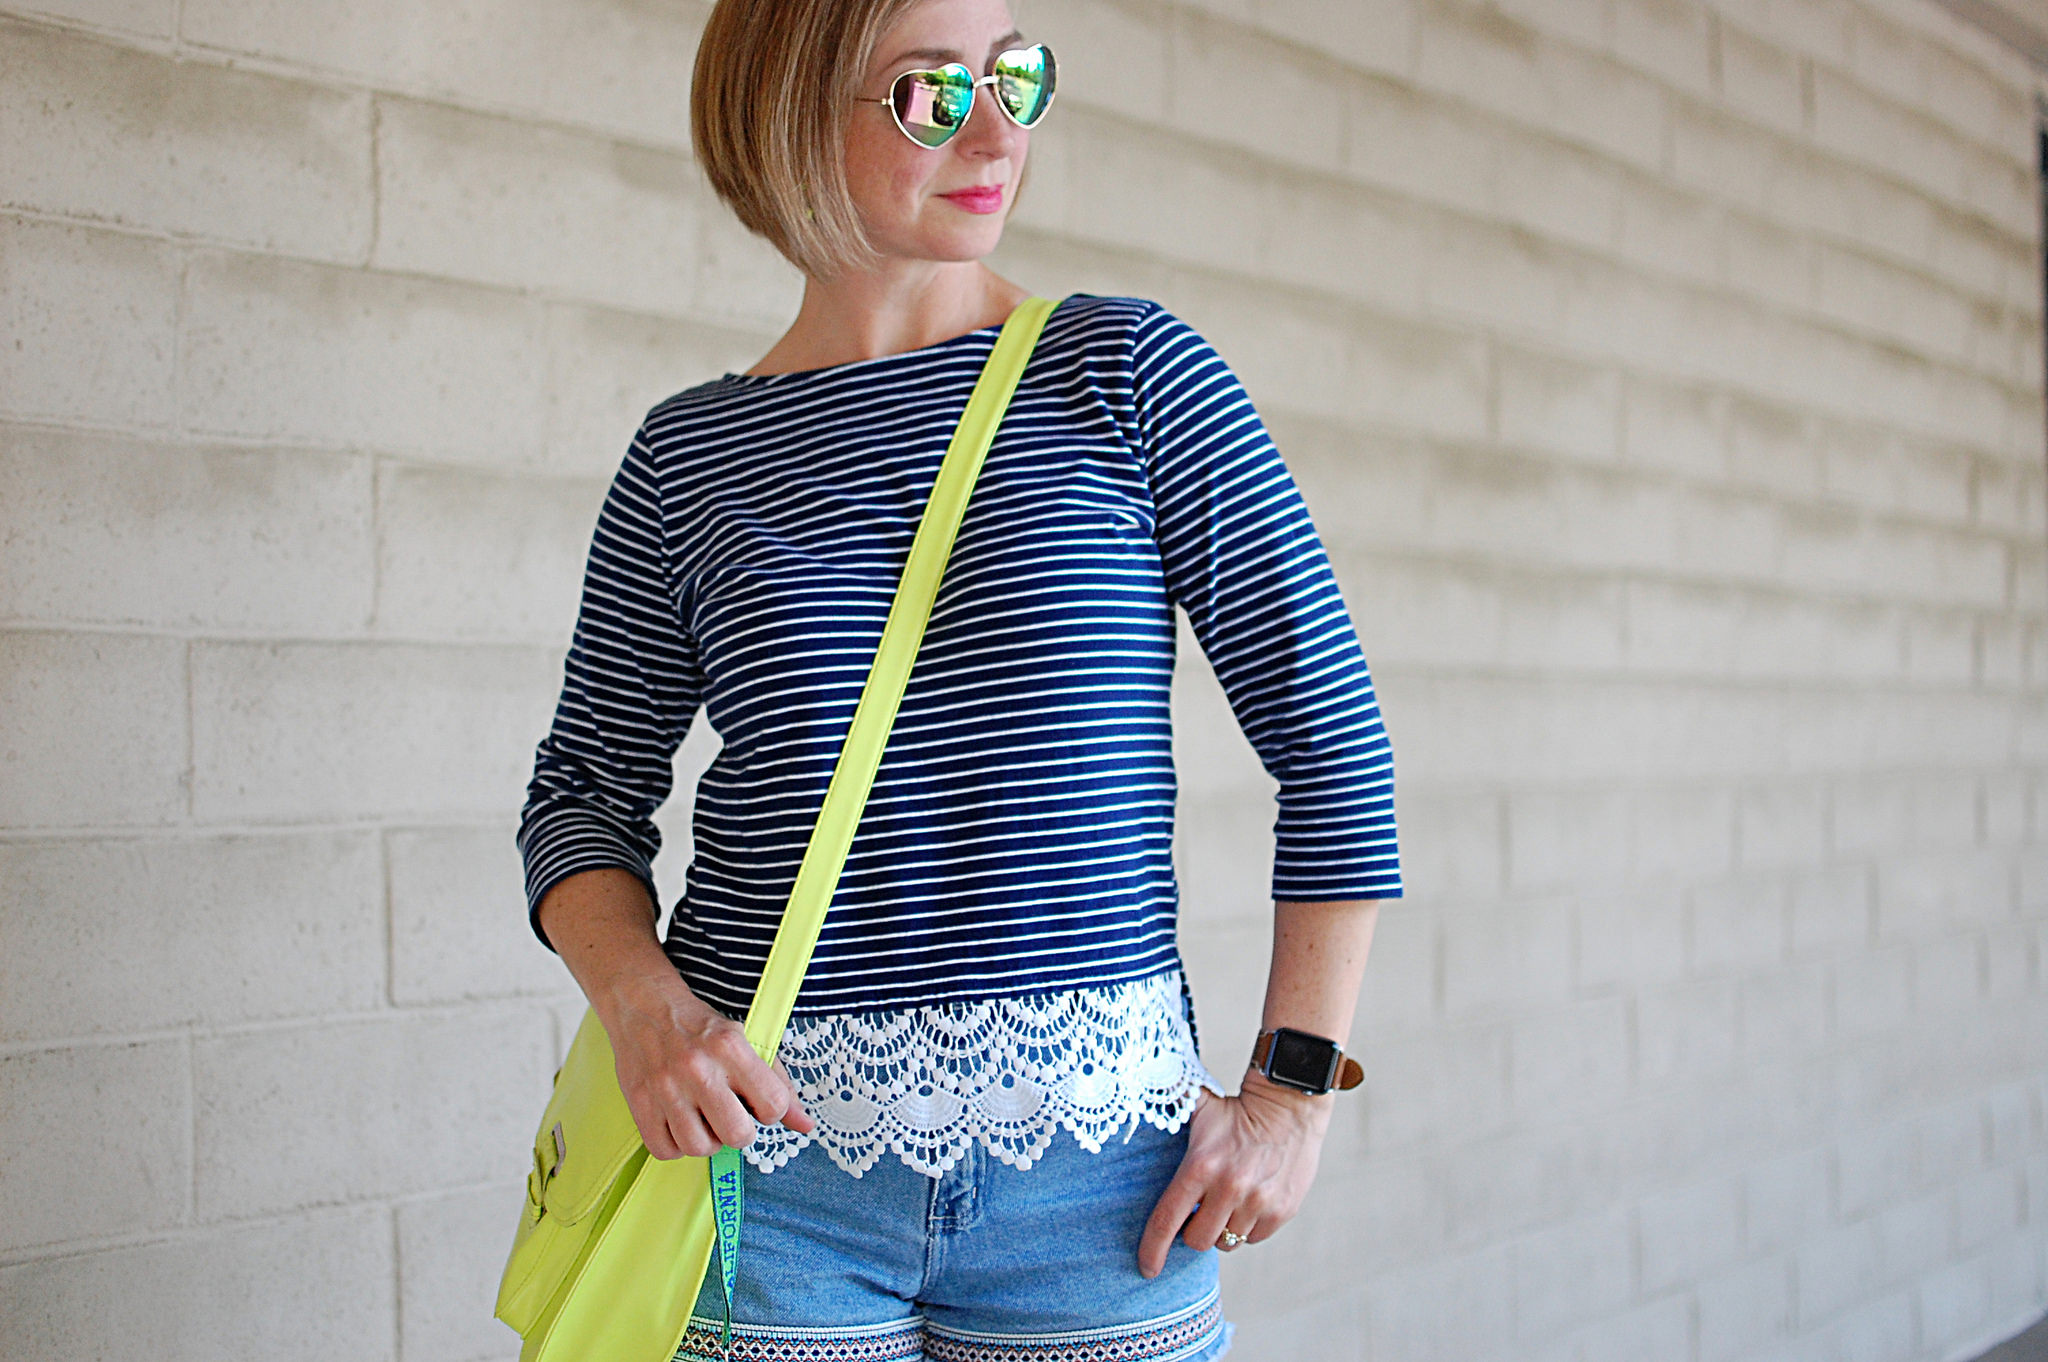 nautical memorial day neon navy crochet ootd whatiwore2day